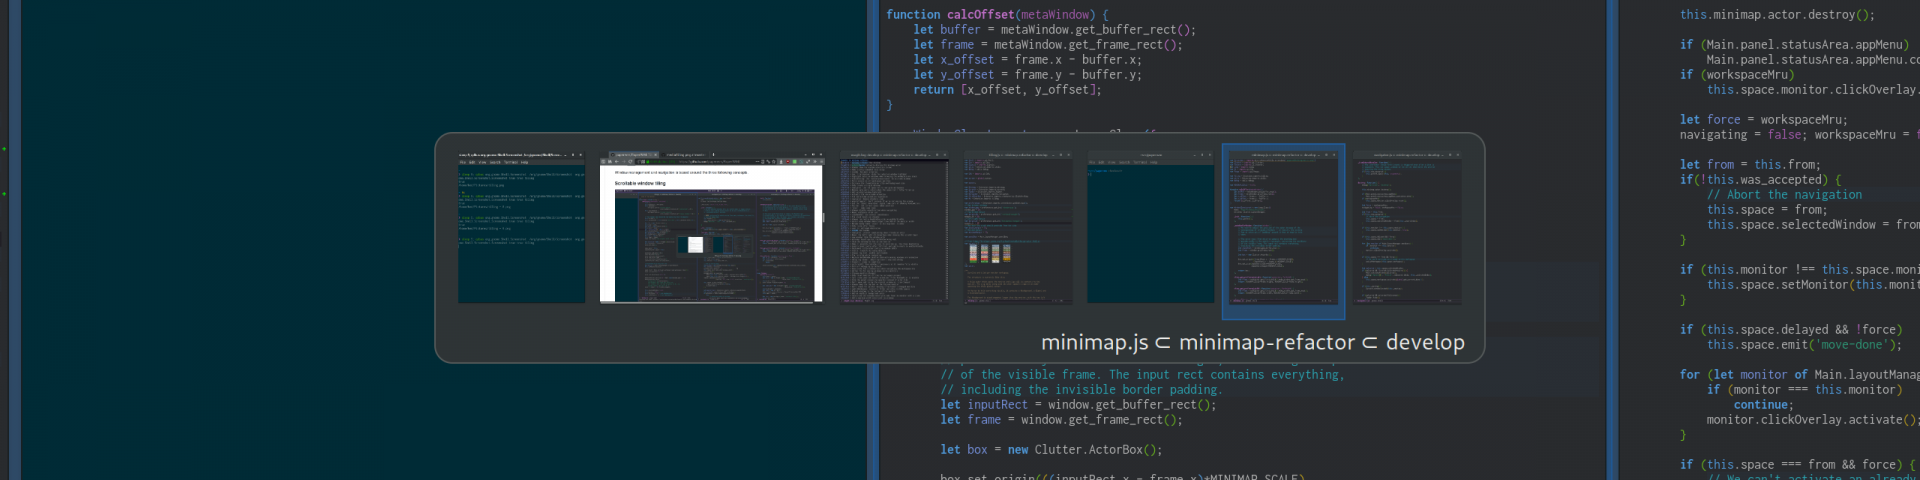 PaperWM is an experimental Gnome Shell extension providing scrollable tiling of windows and per monitor workspaces